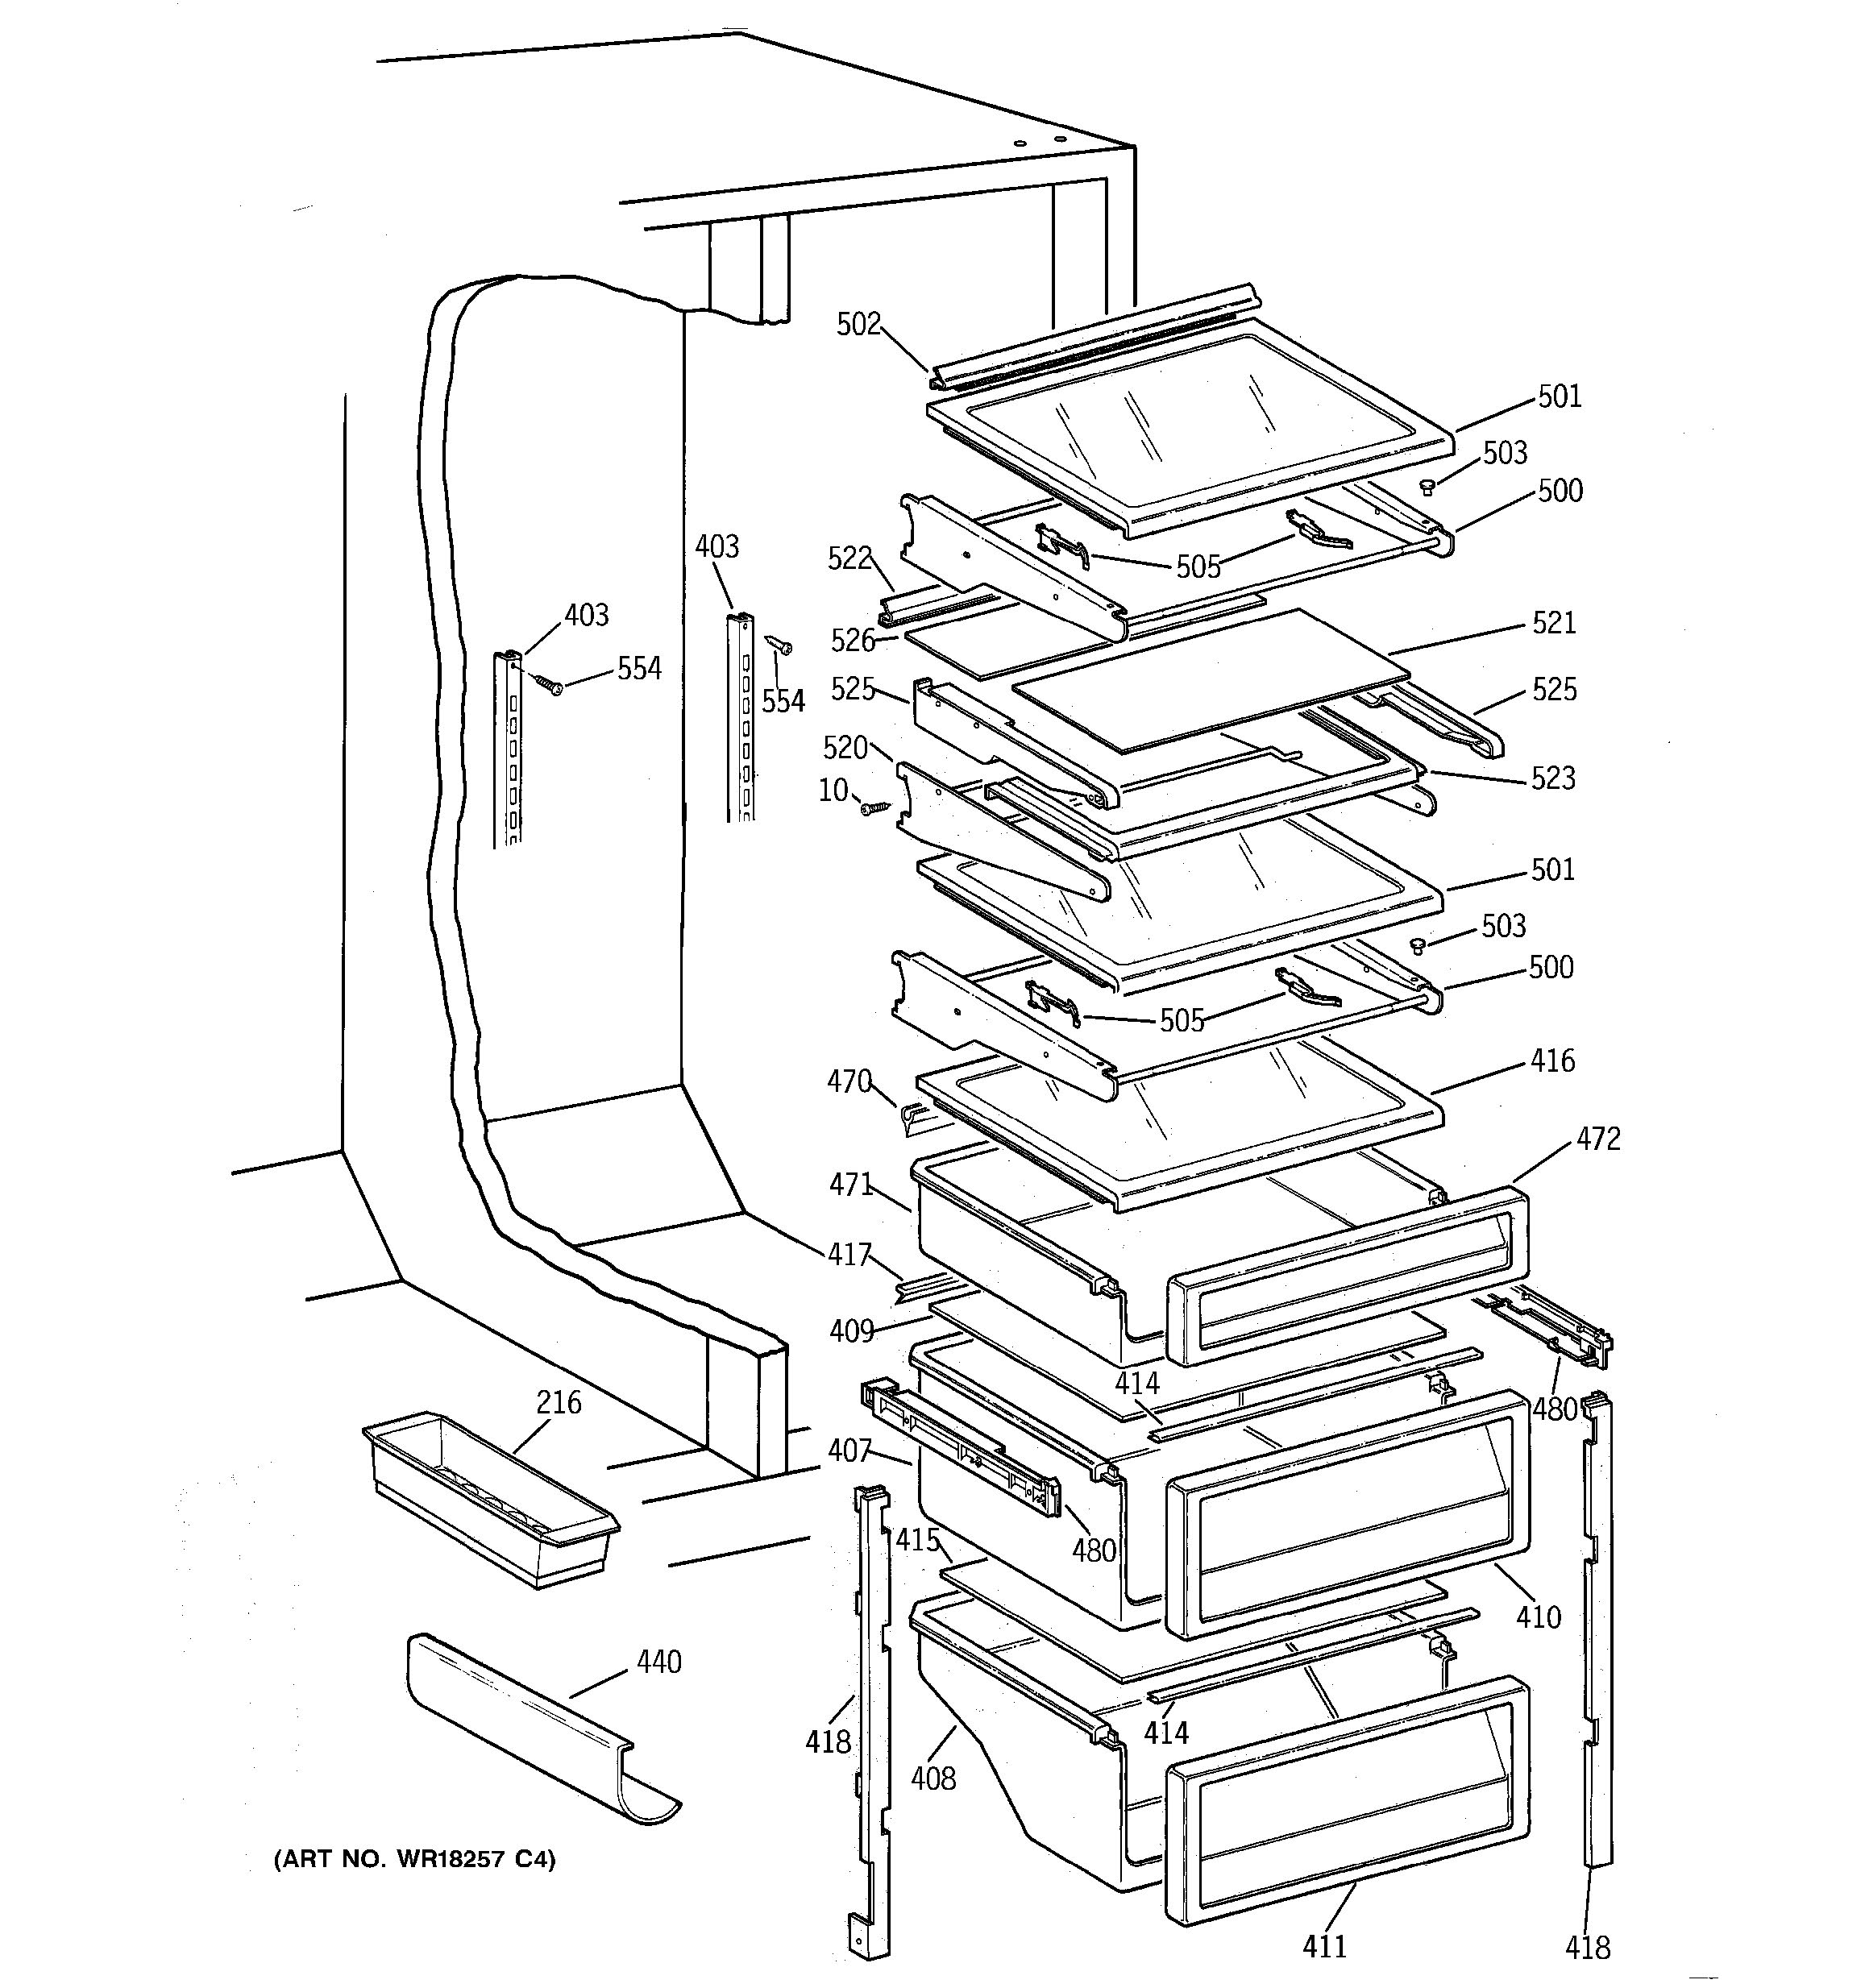 Whirlpool Refrigerator Diagram Parts Question About Wiring Conquest Assembly View For Fresh Food Shelves Tpx21prdabb